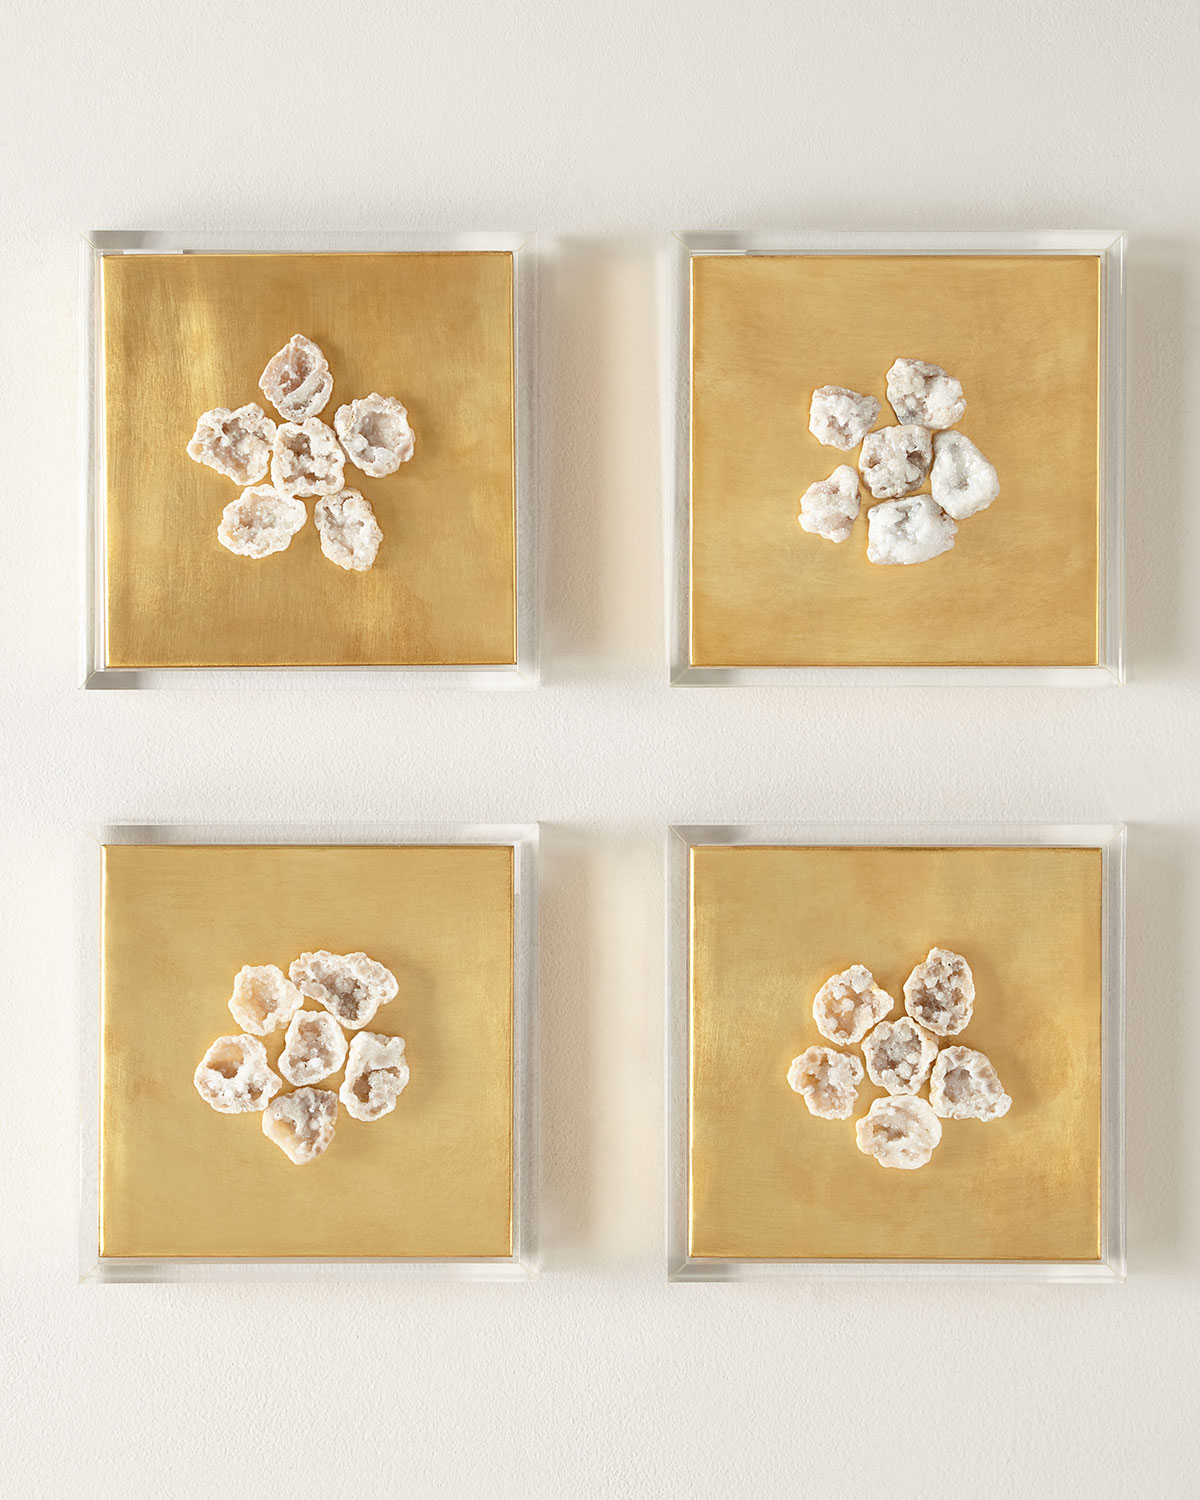 Framed Geode Wall Decor | Neiman Marcus